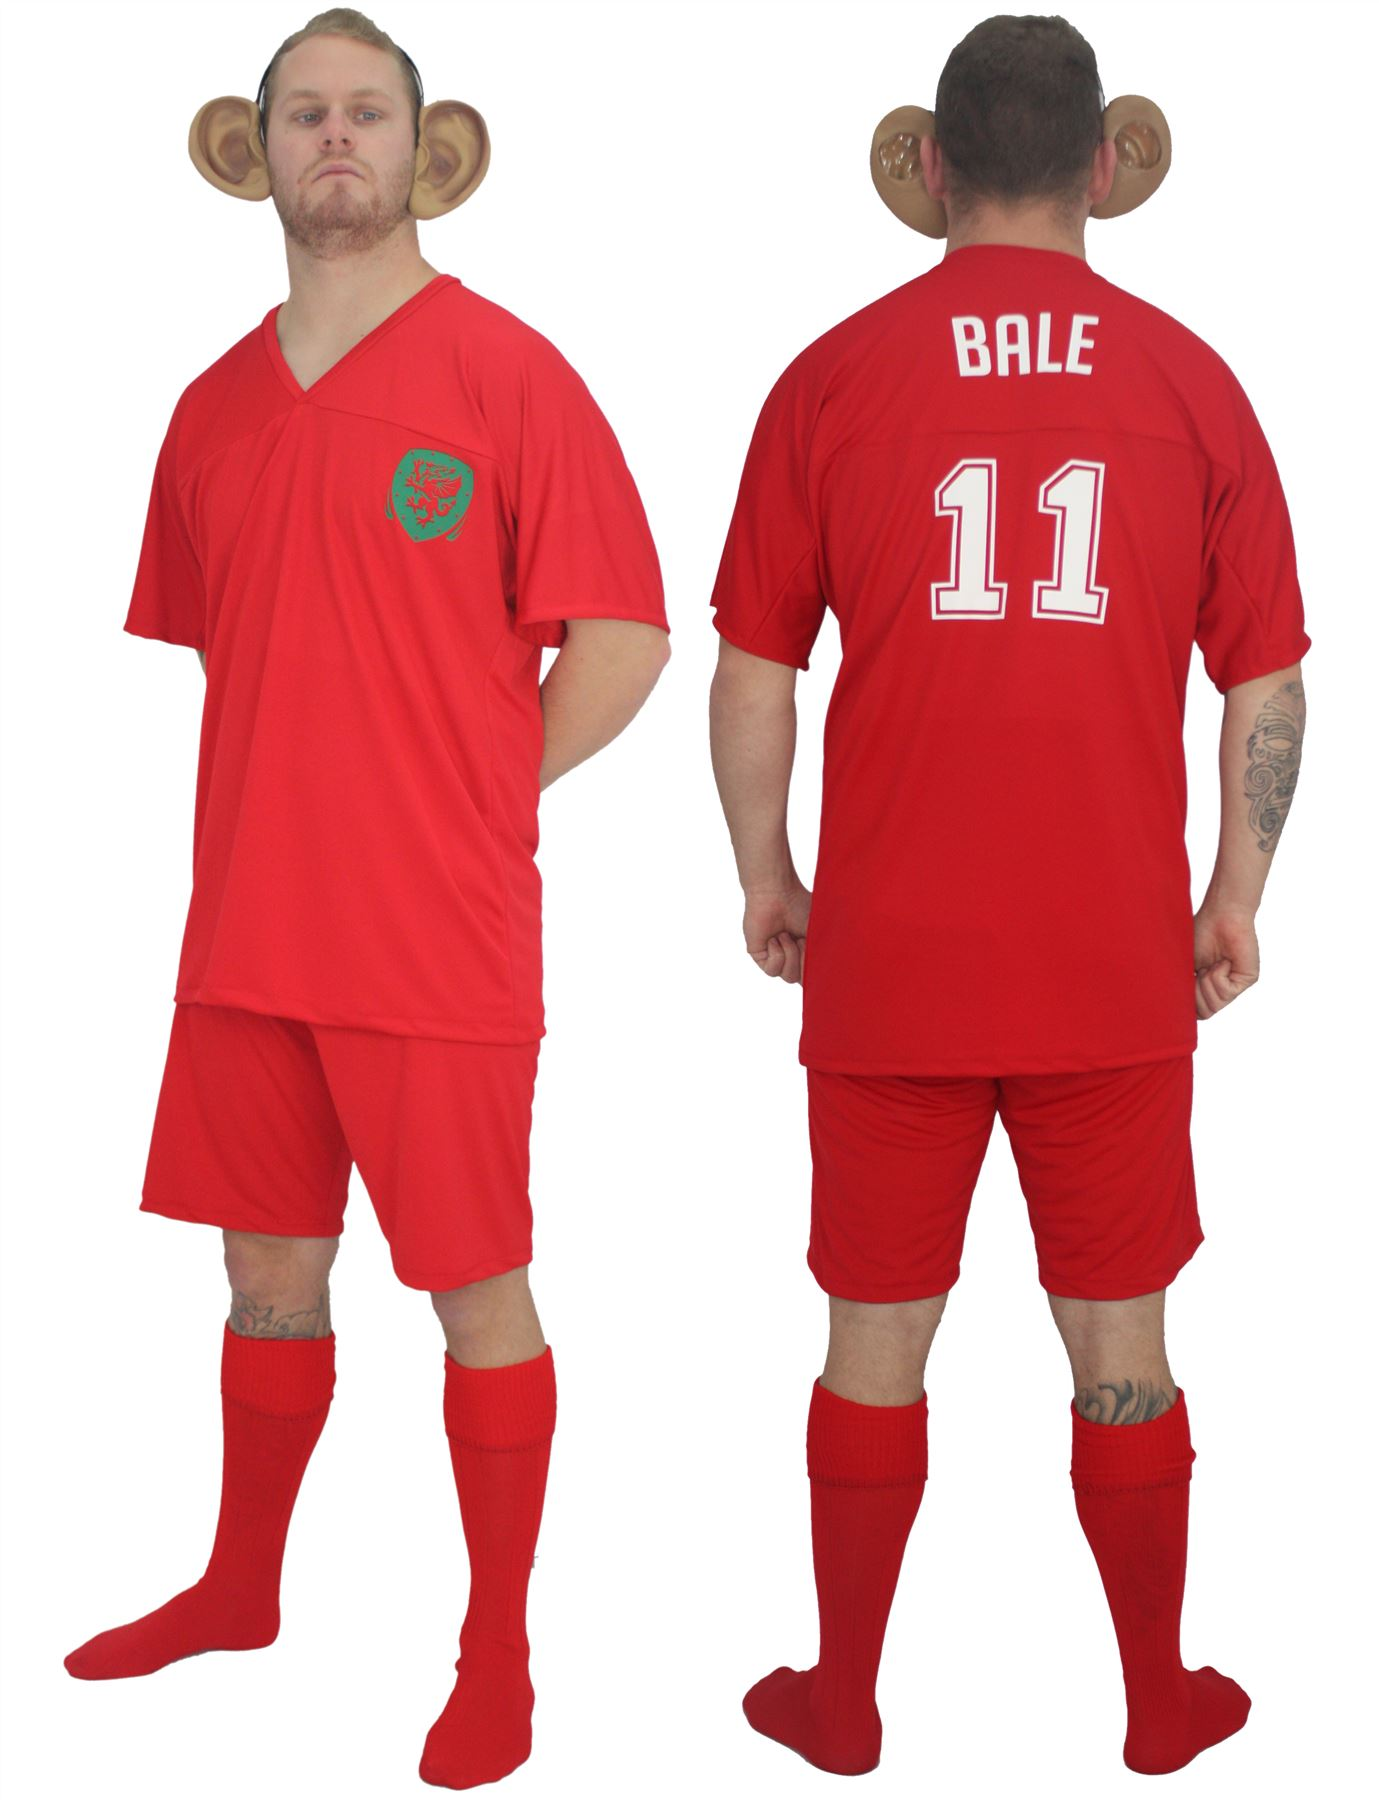 info for 3497c 4e7a0 Details about Adults Welsh Football Icon Gareth Bale Kit Fancy Dress & Big  Ears